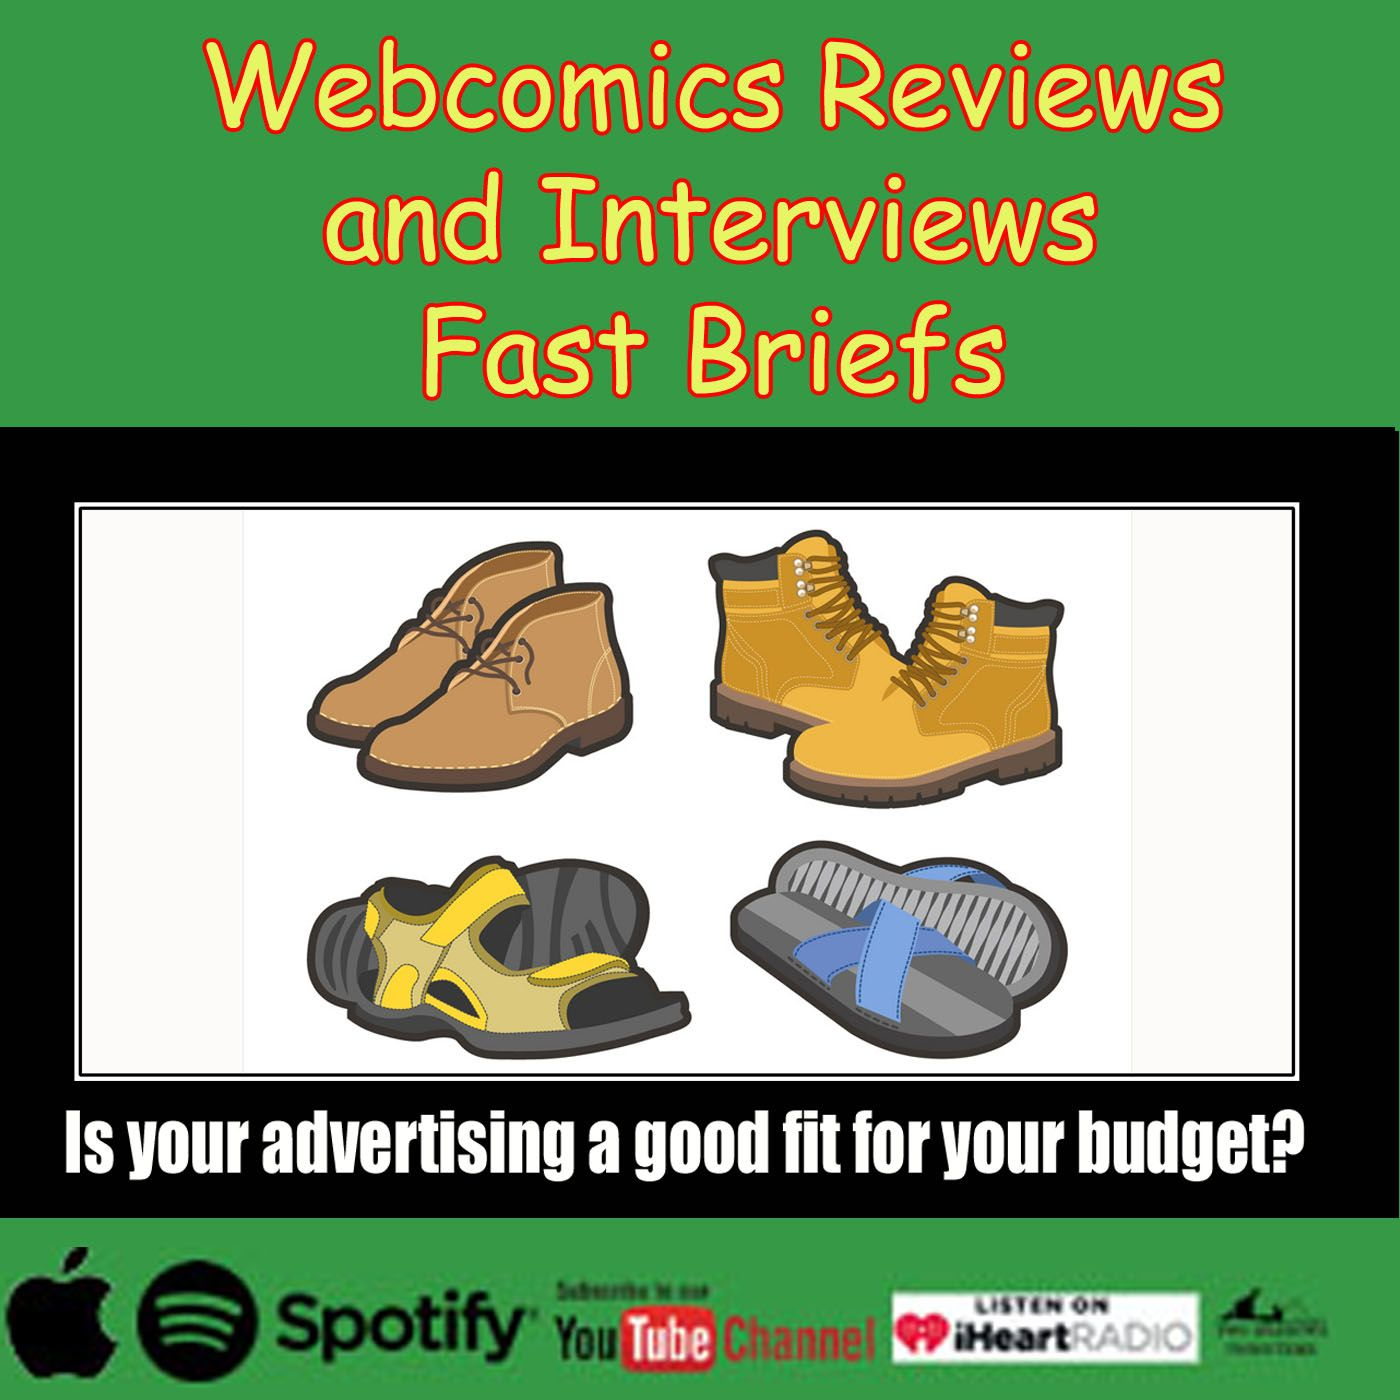 Making The Advertising Budget Fit Your Needs